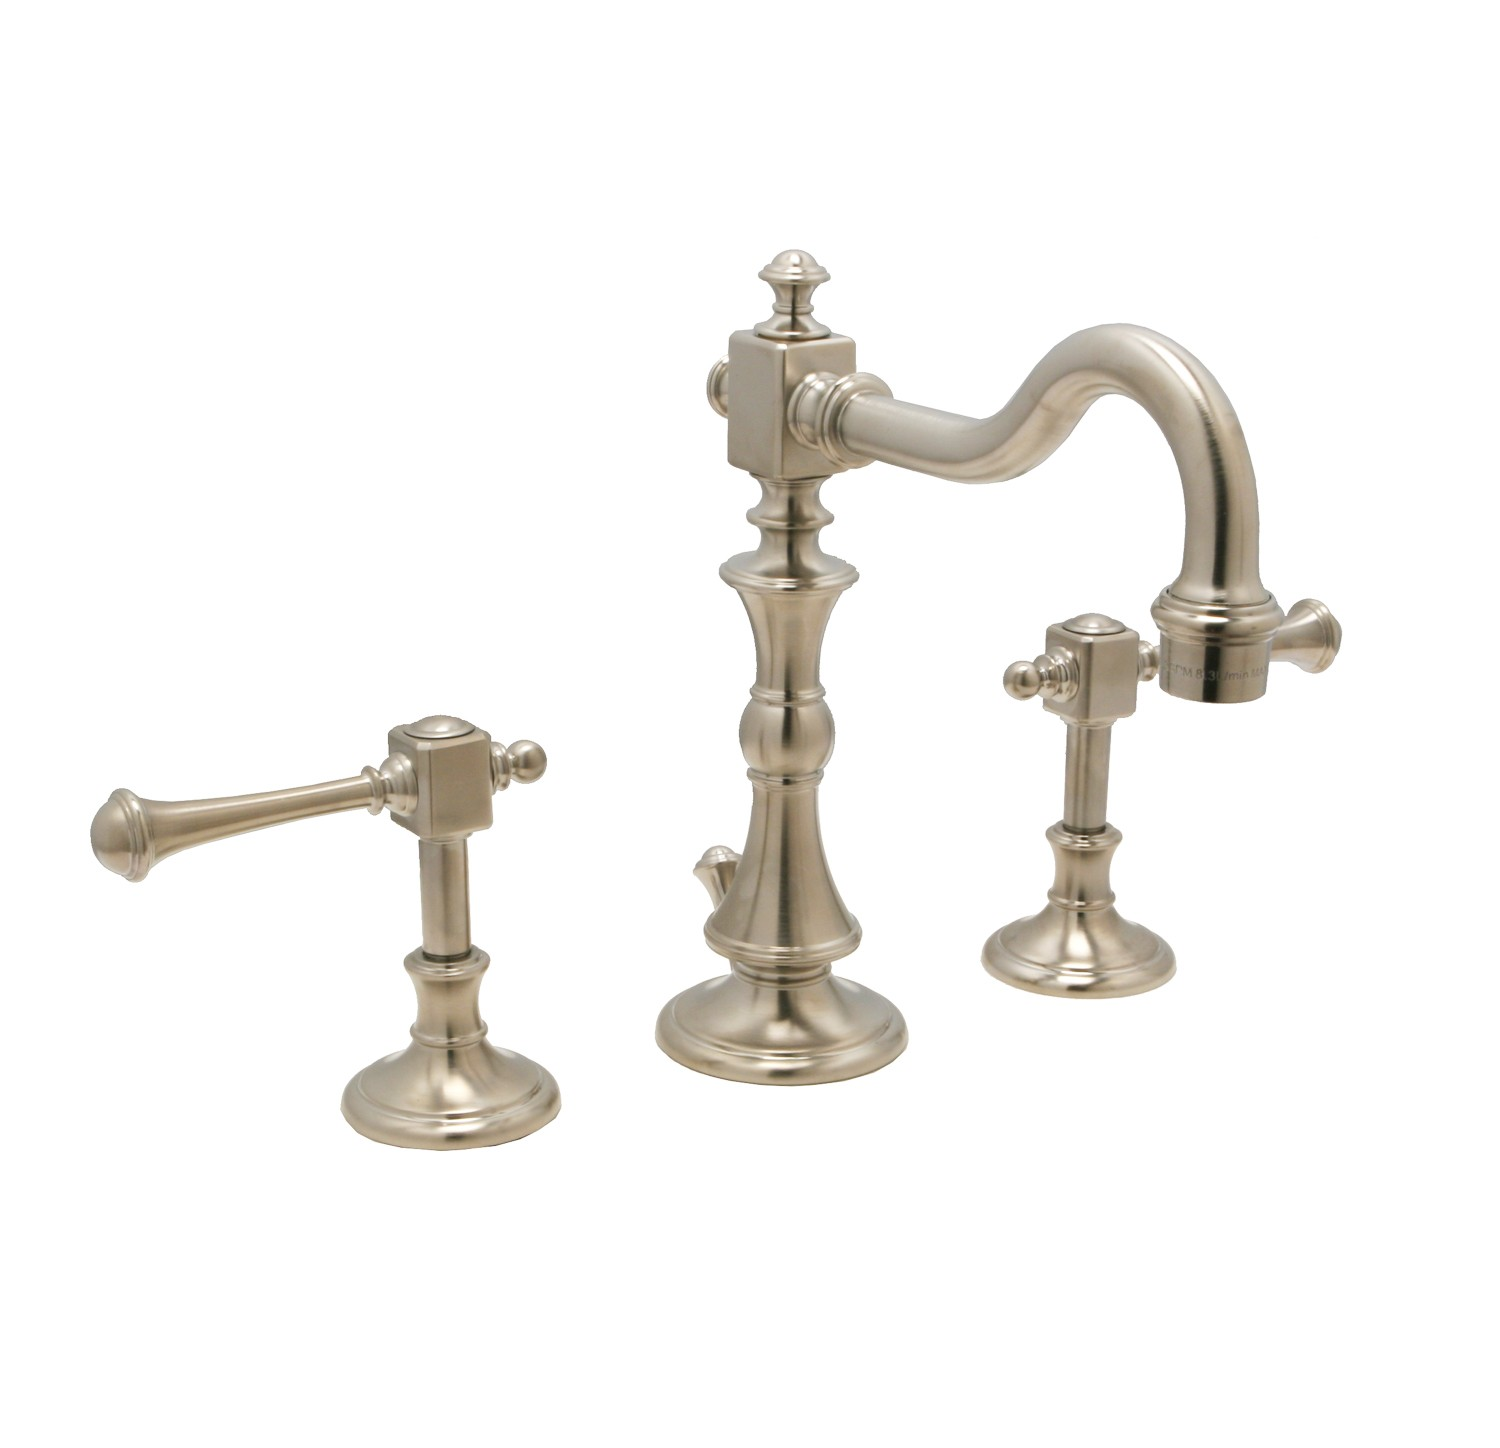 Monarch Widespread Faucet W4560302-1